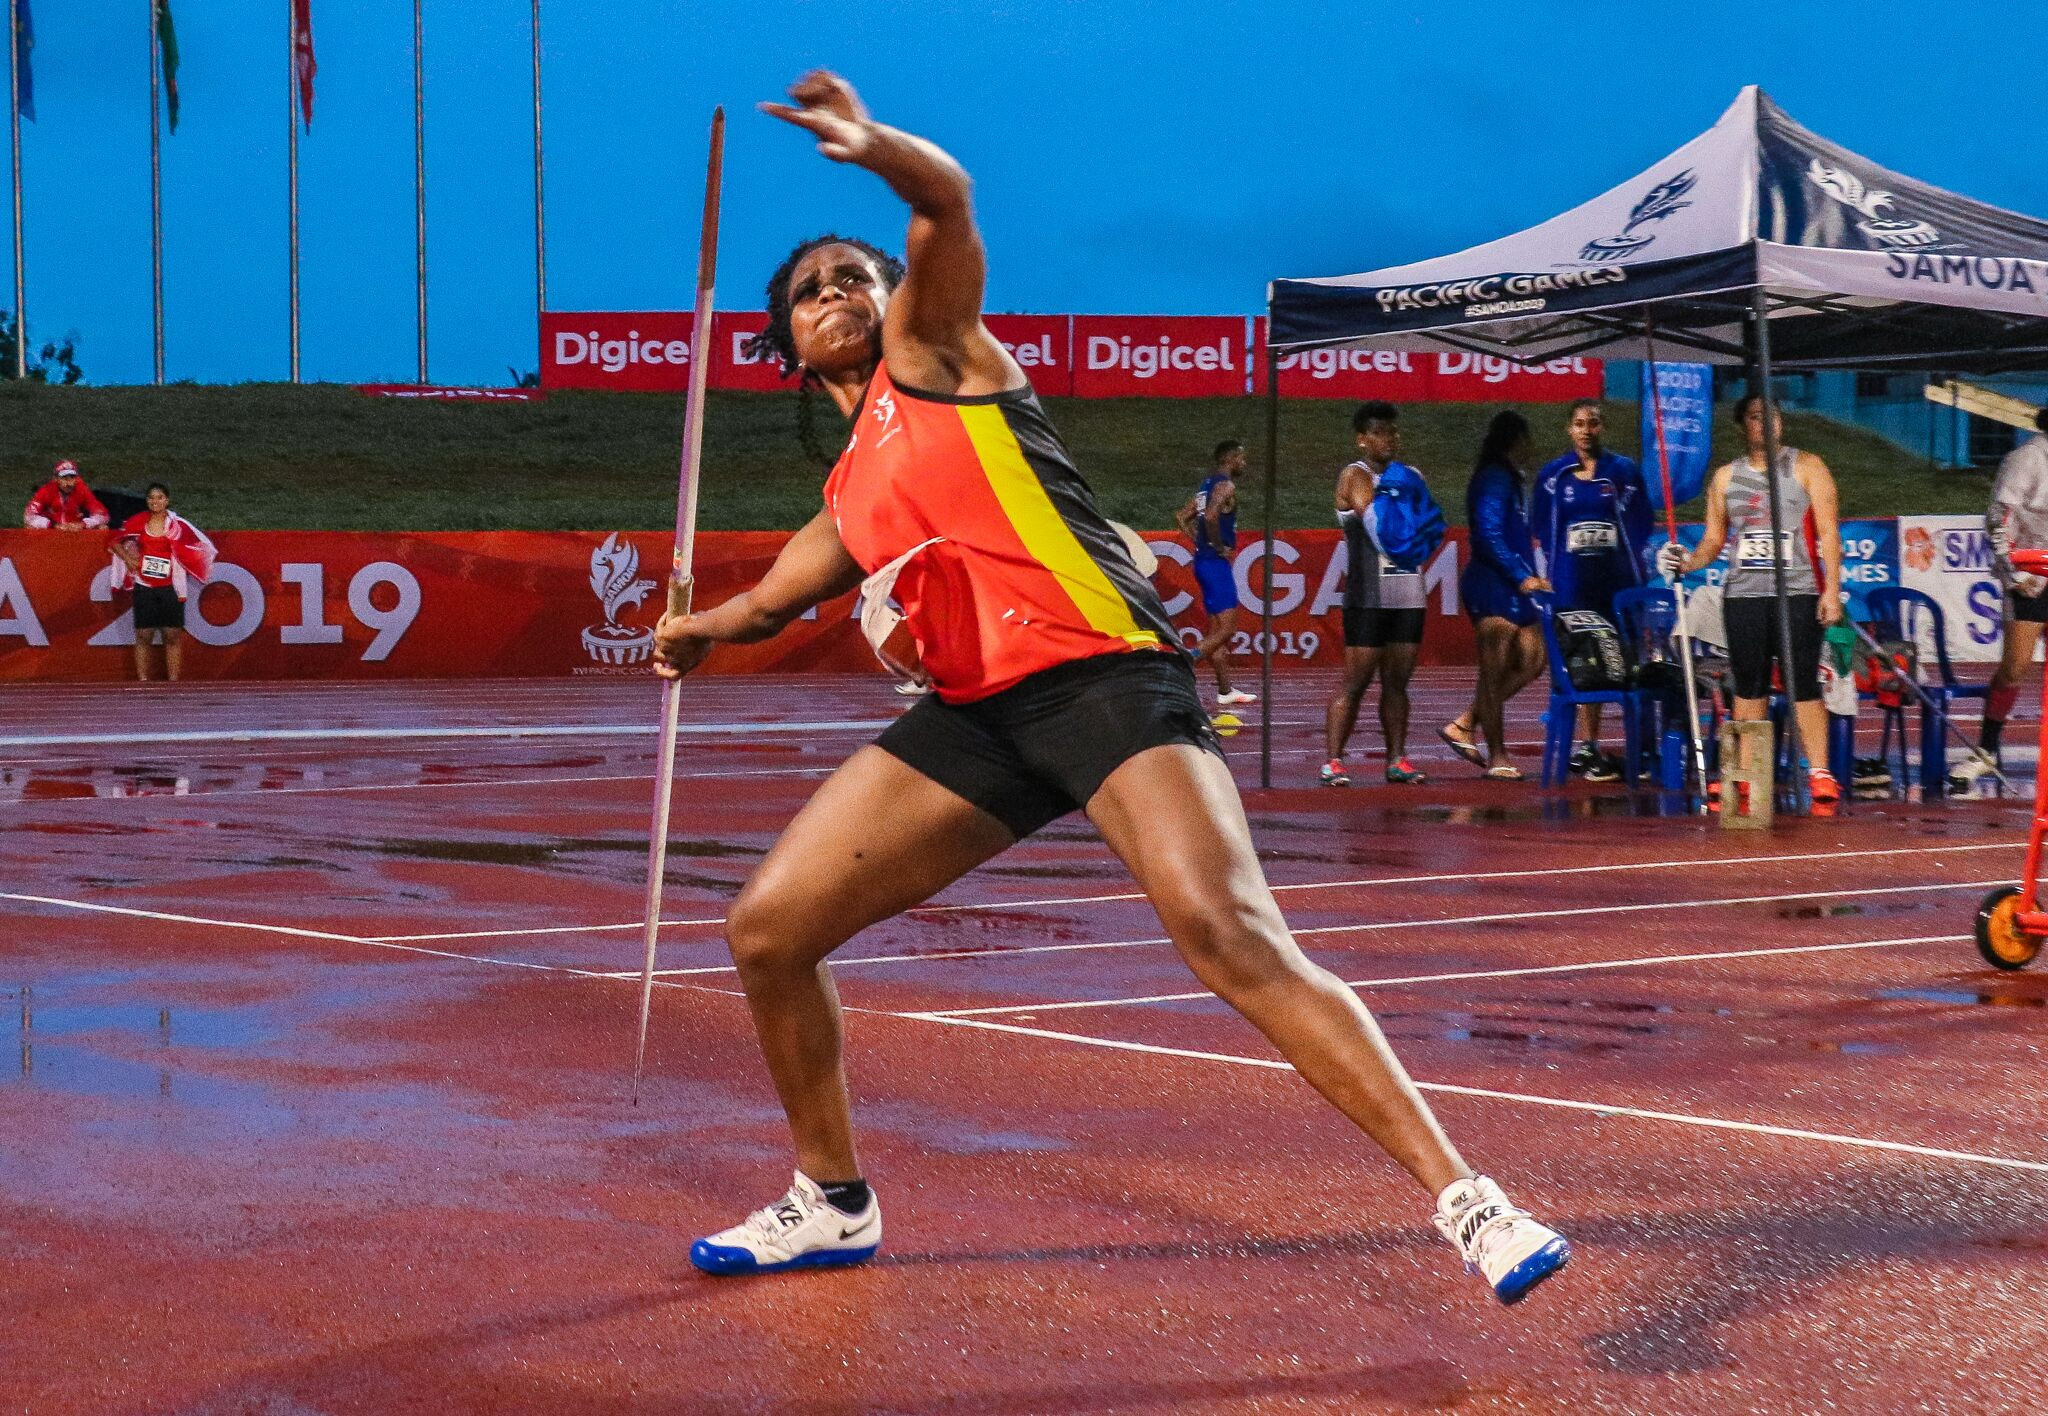 Sharon Toako took gold in a dramatic women's javelin competition that had to be paused due to heavy rain ©Samoa 2019